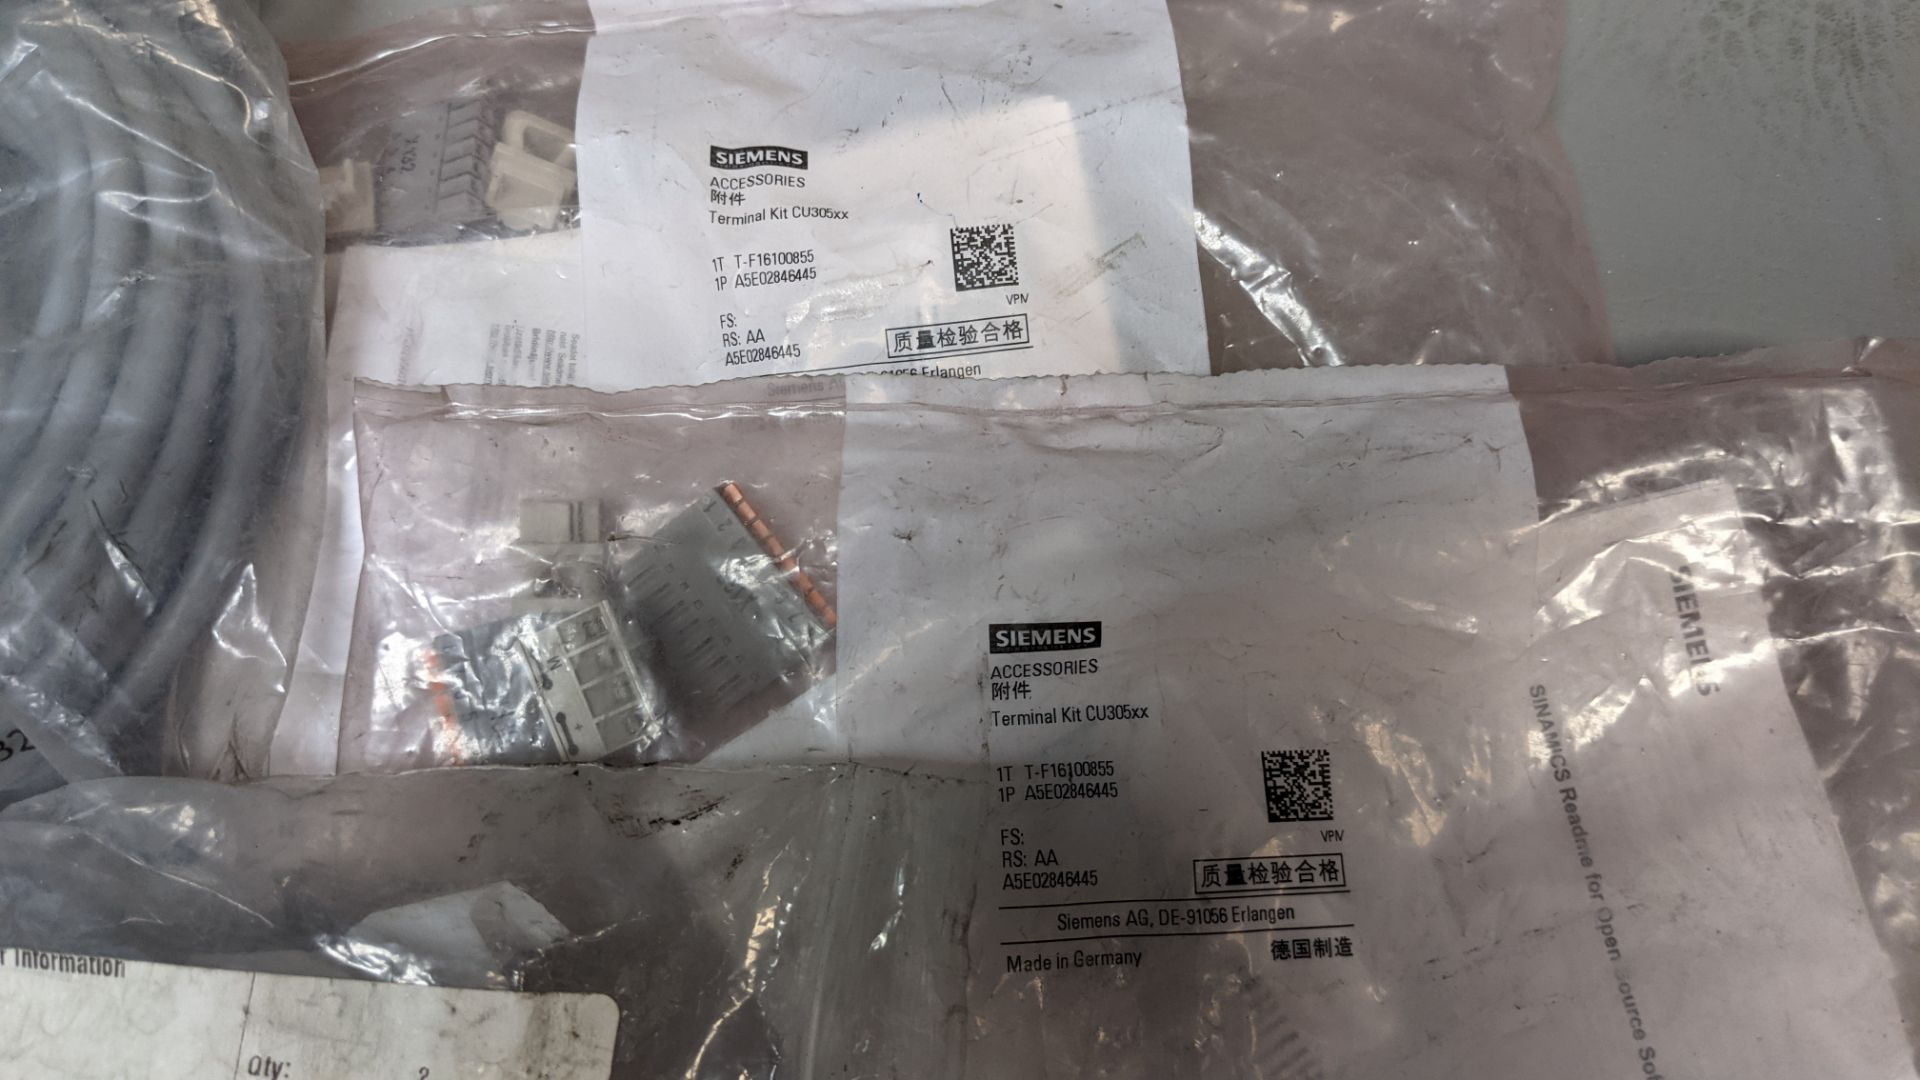 LOT OF MRO PARTS - Image 9 of 11